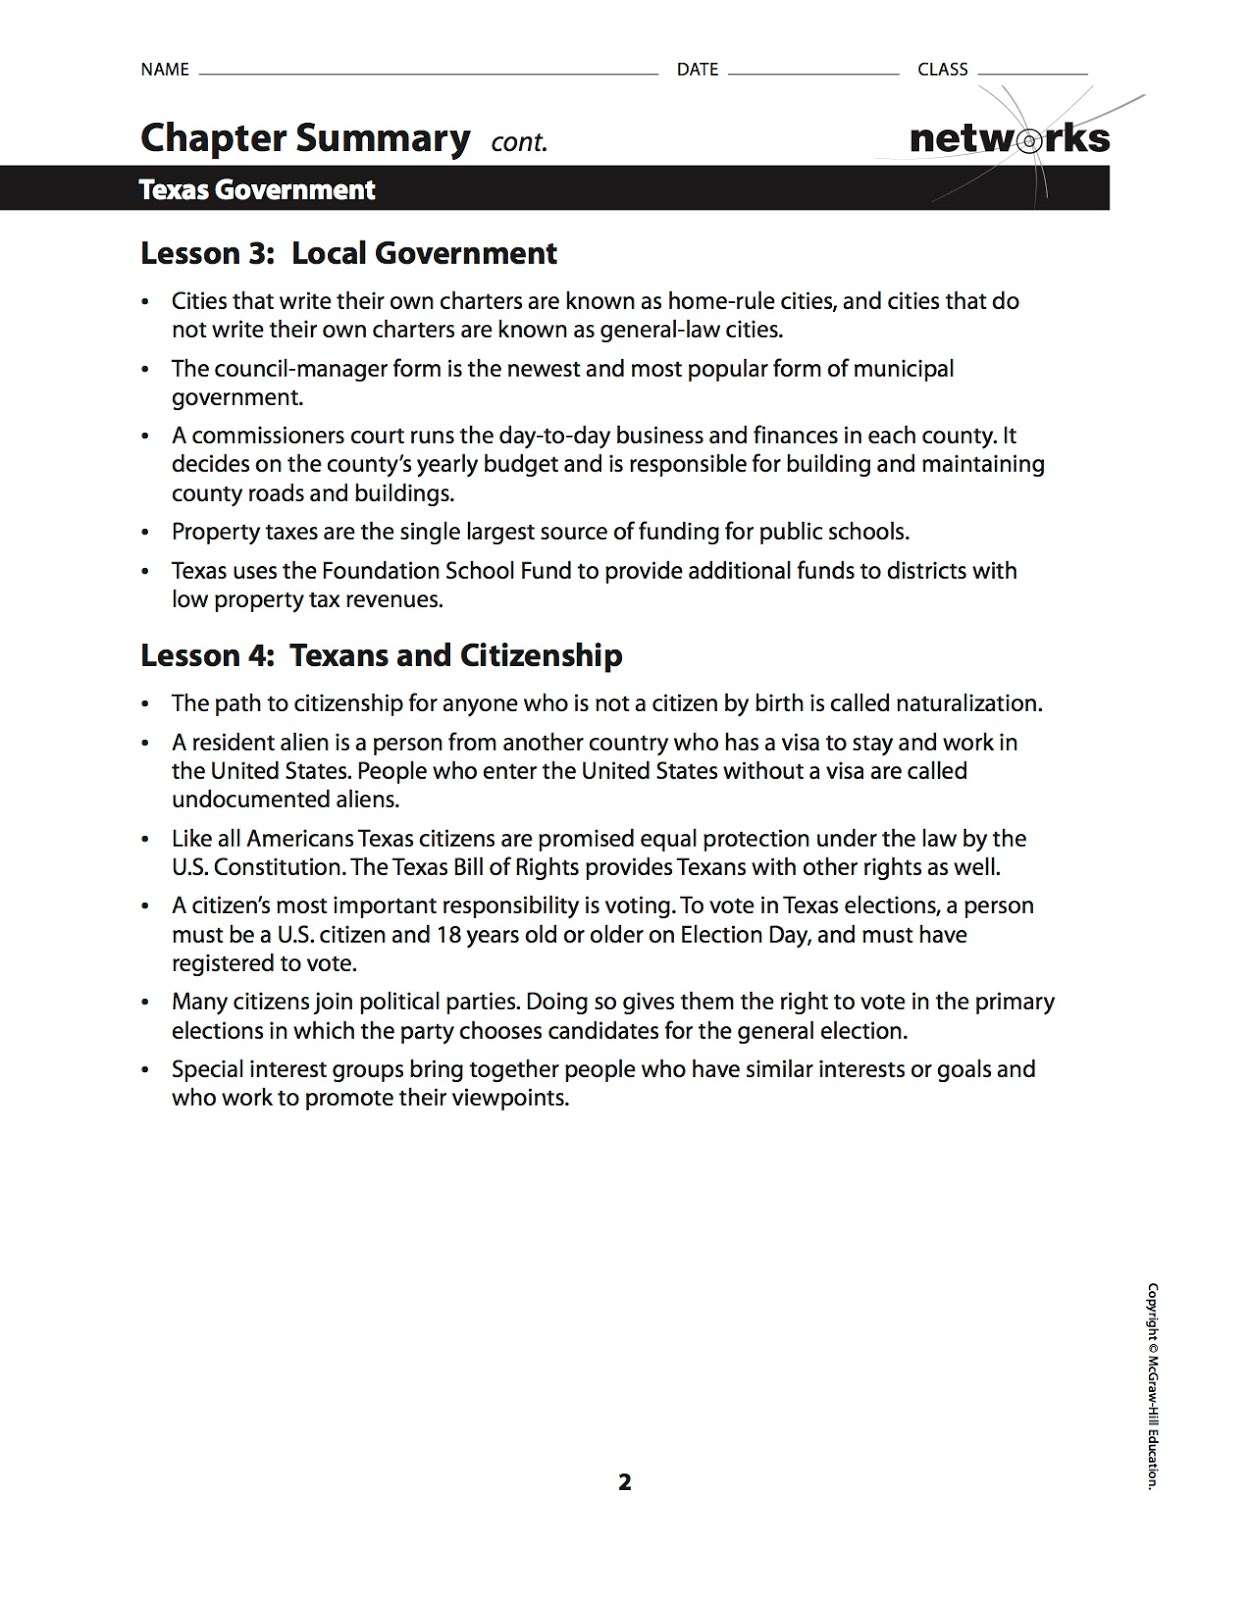 Ehms Texas History Chapter 28 Vocabulary Builder Worksheet Due Chapter 28 Summary And Take